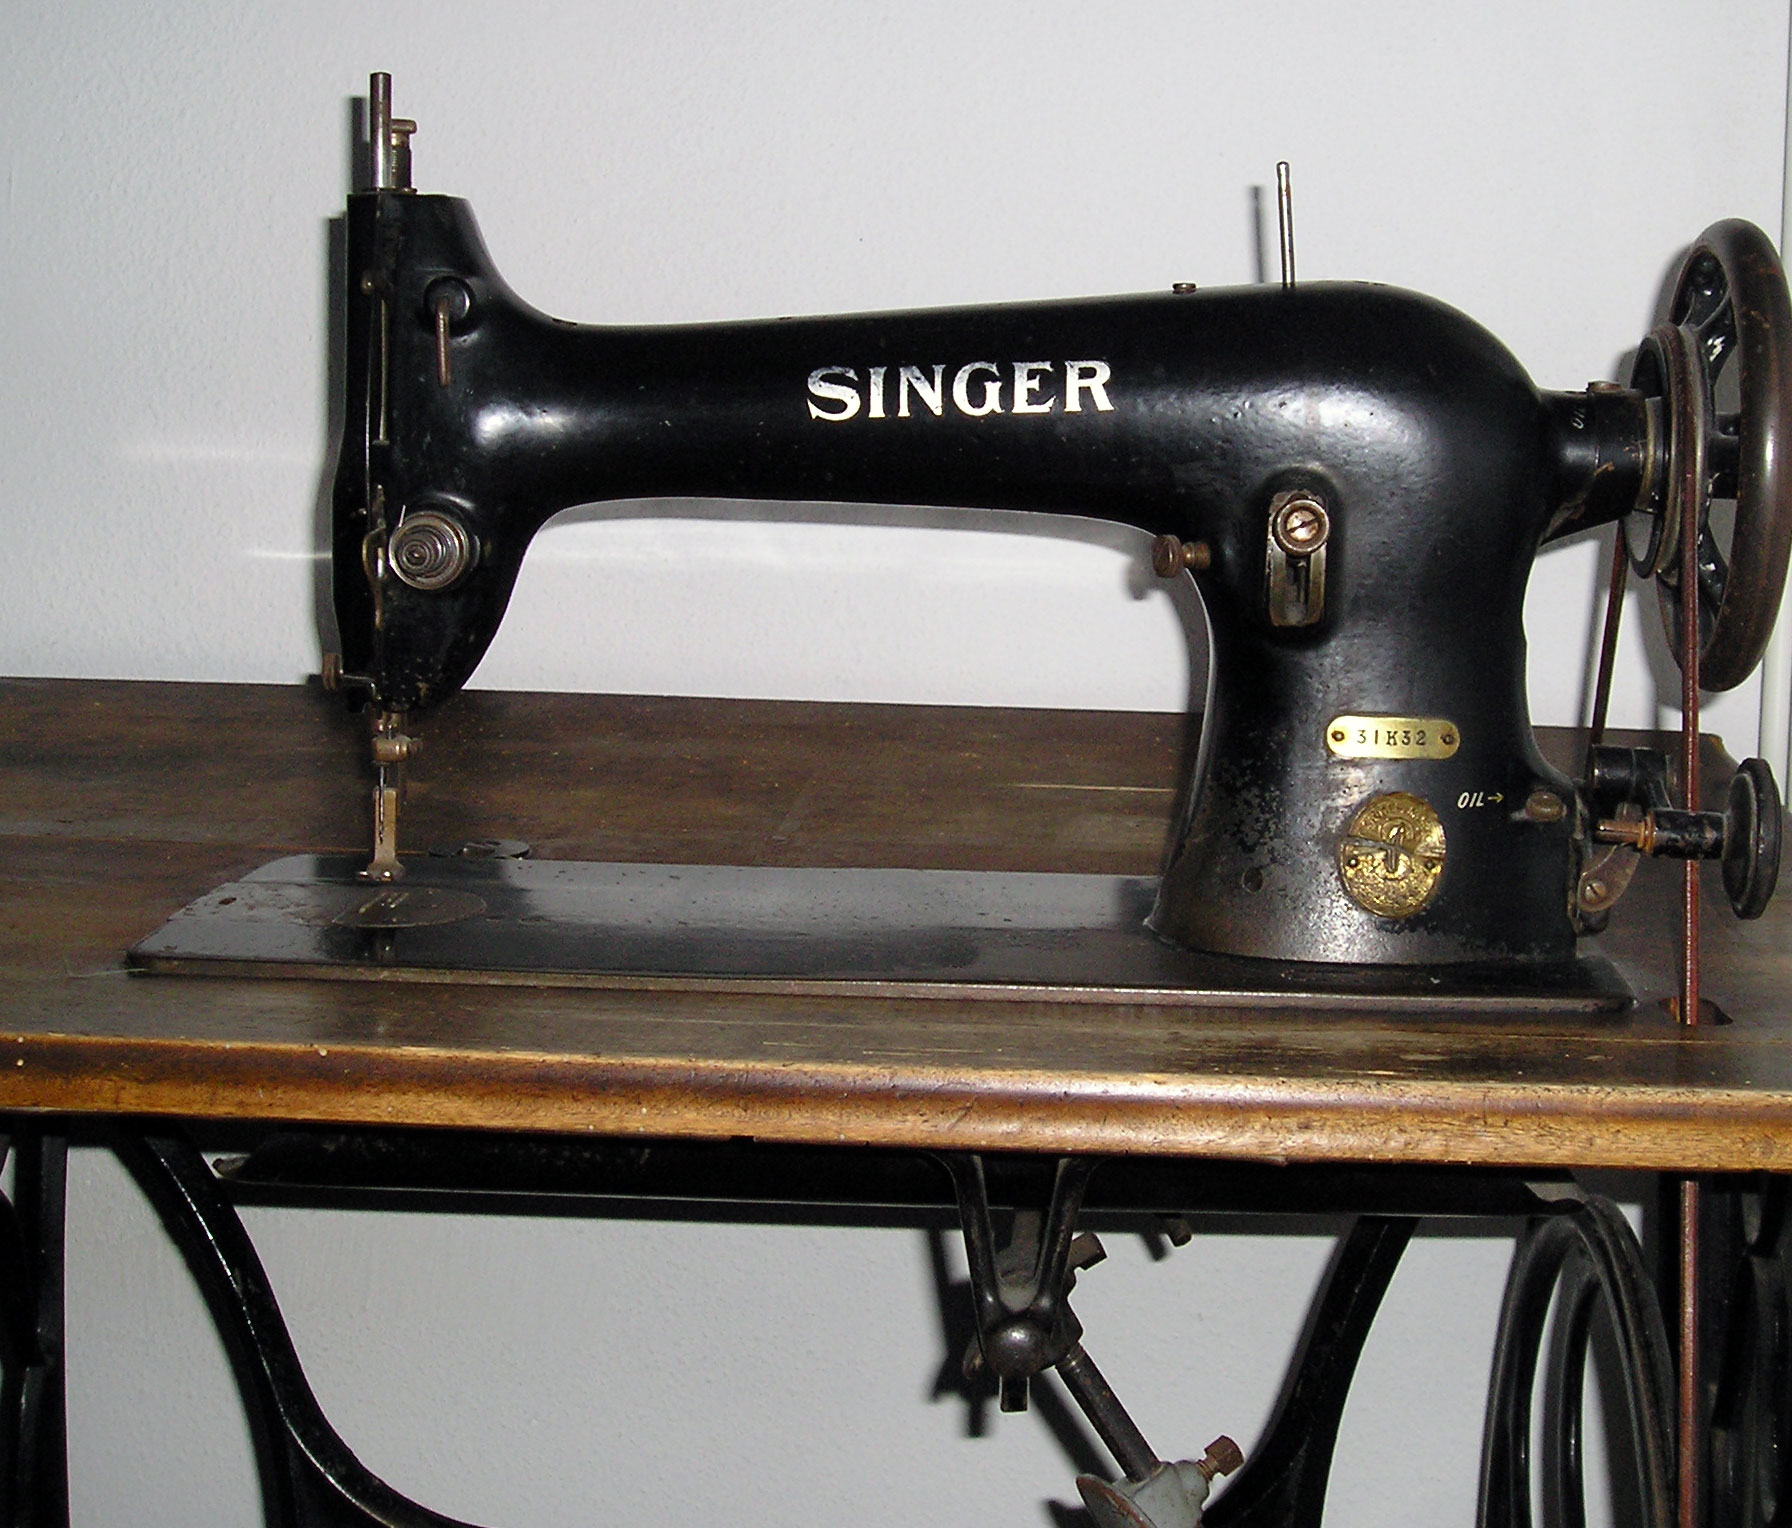 file singer sewing machine wikimedia commons. Black Bedroom Furniture Sets. Home Design Ideas